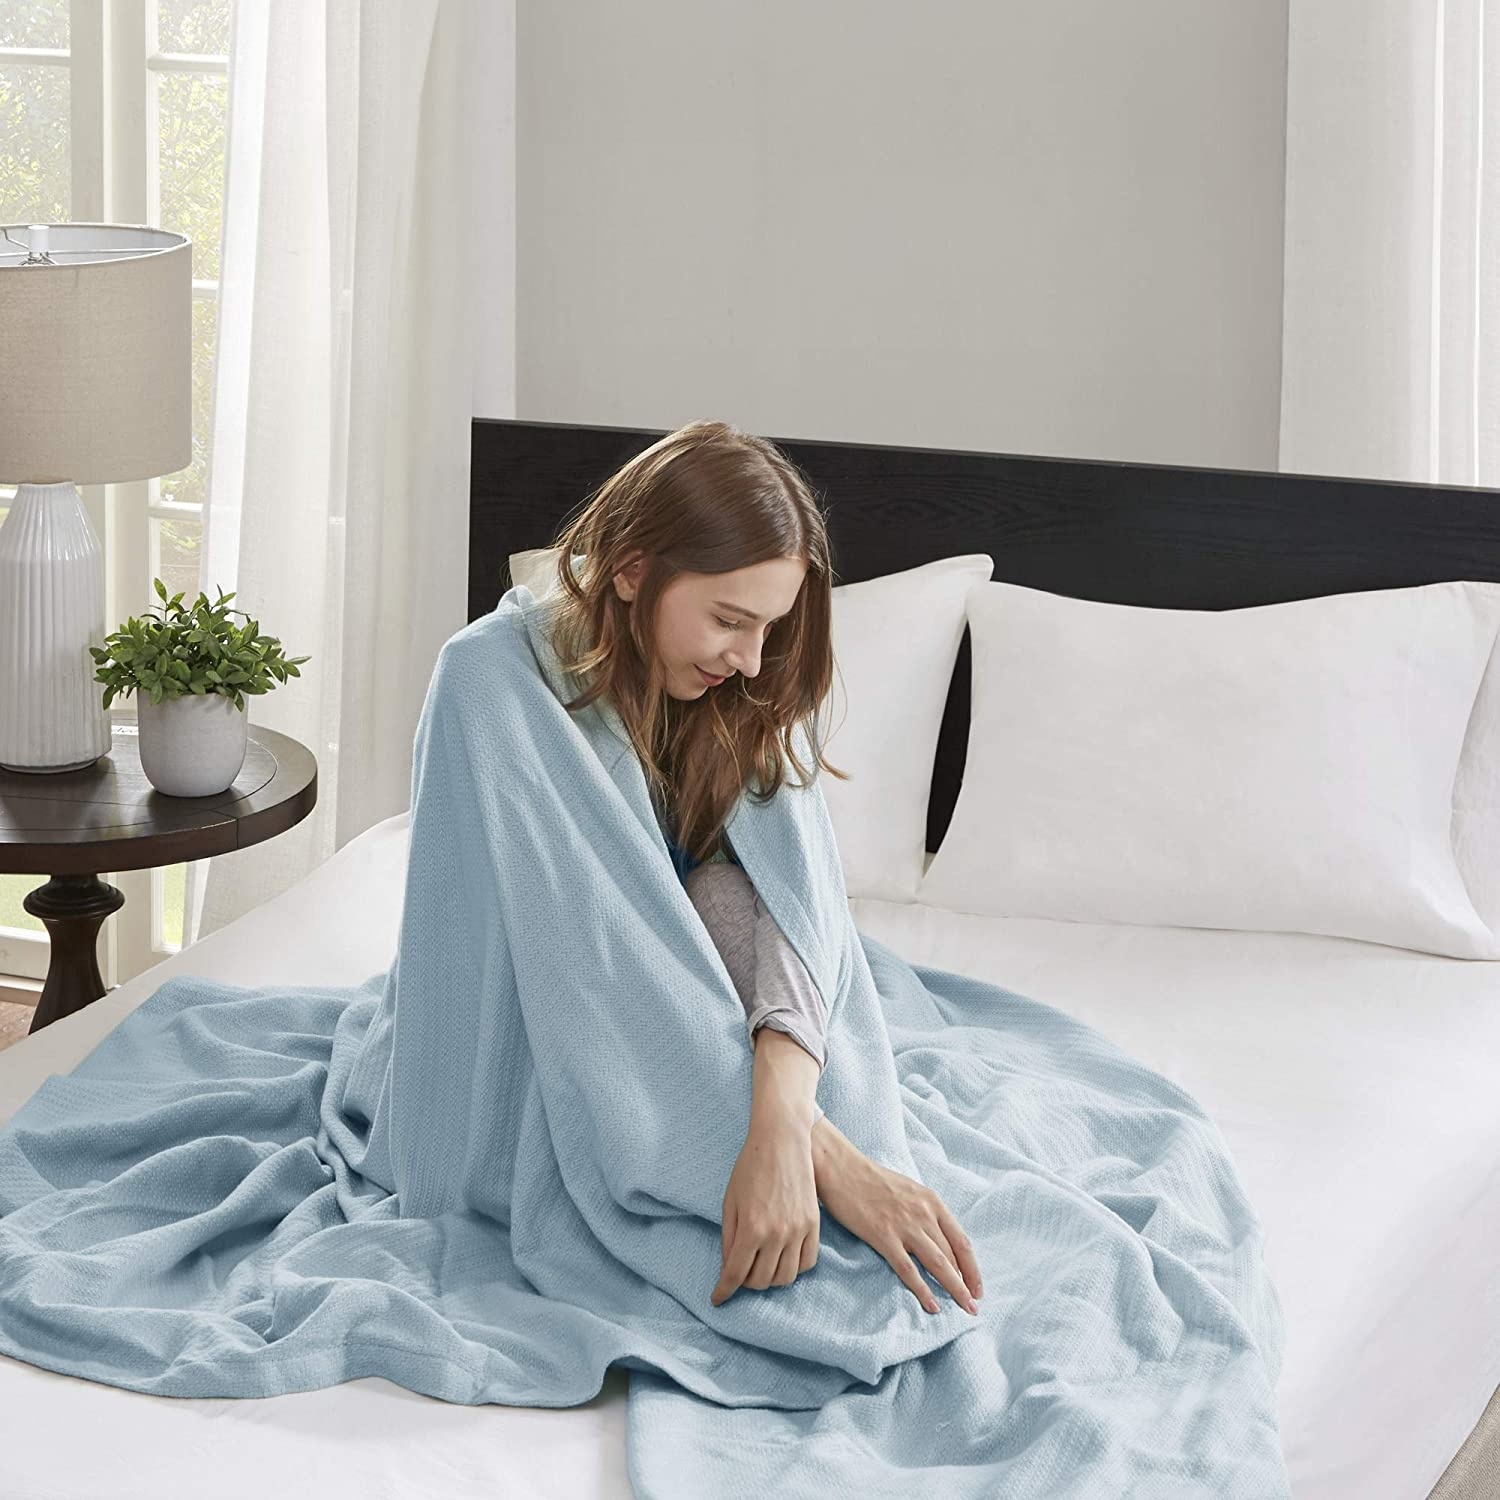 Madison Park Liquid Cotton Luxury Blanket Premium Soft Cozy 100% Ring Spun Cotton For Bed , Couch or Sofa, King, Light Blue